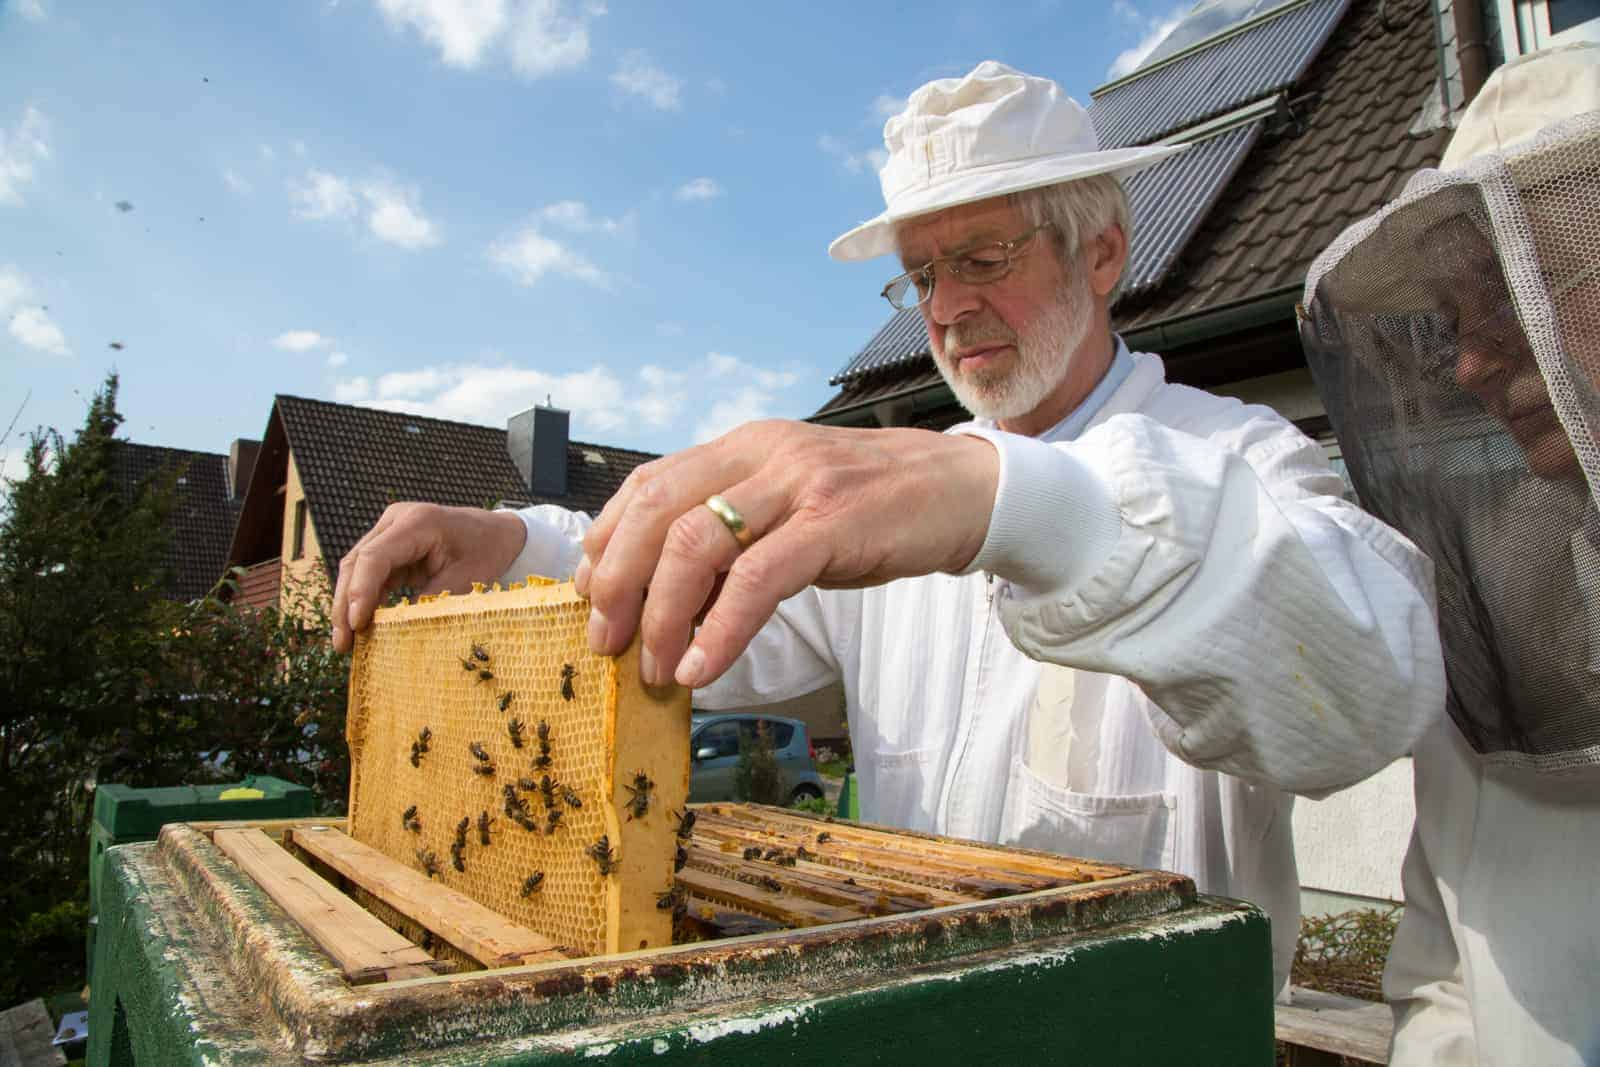 Beekeeping Suit or Jacket: Which is Better?